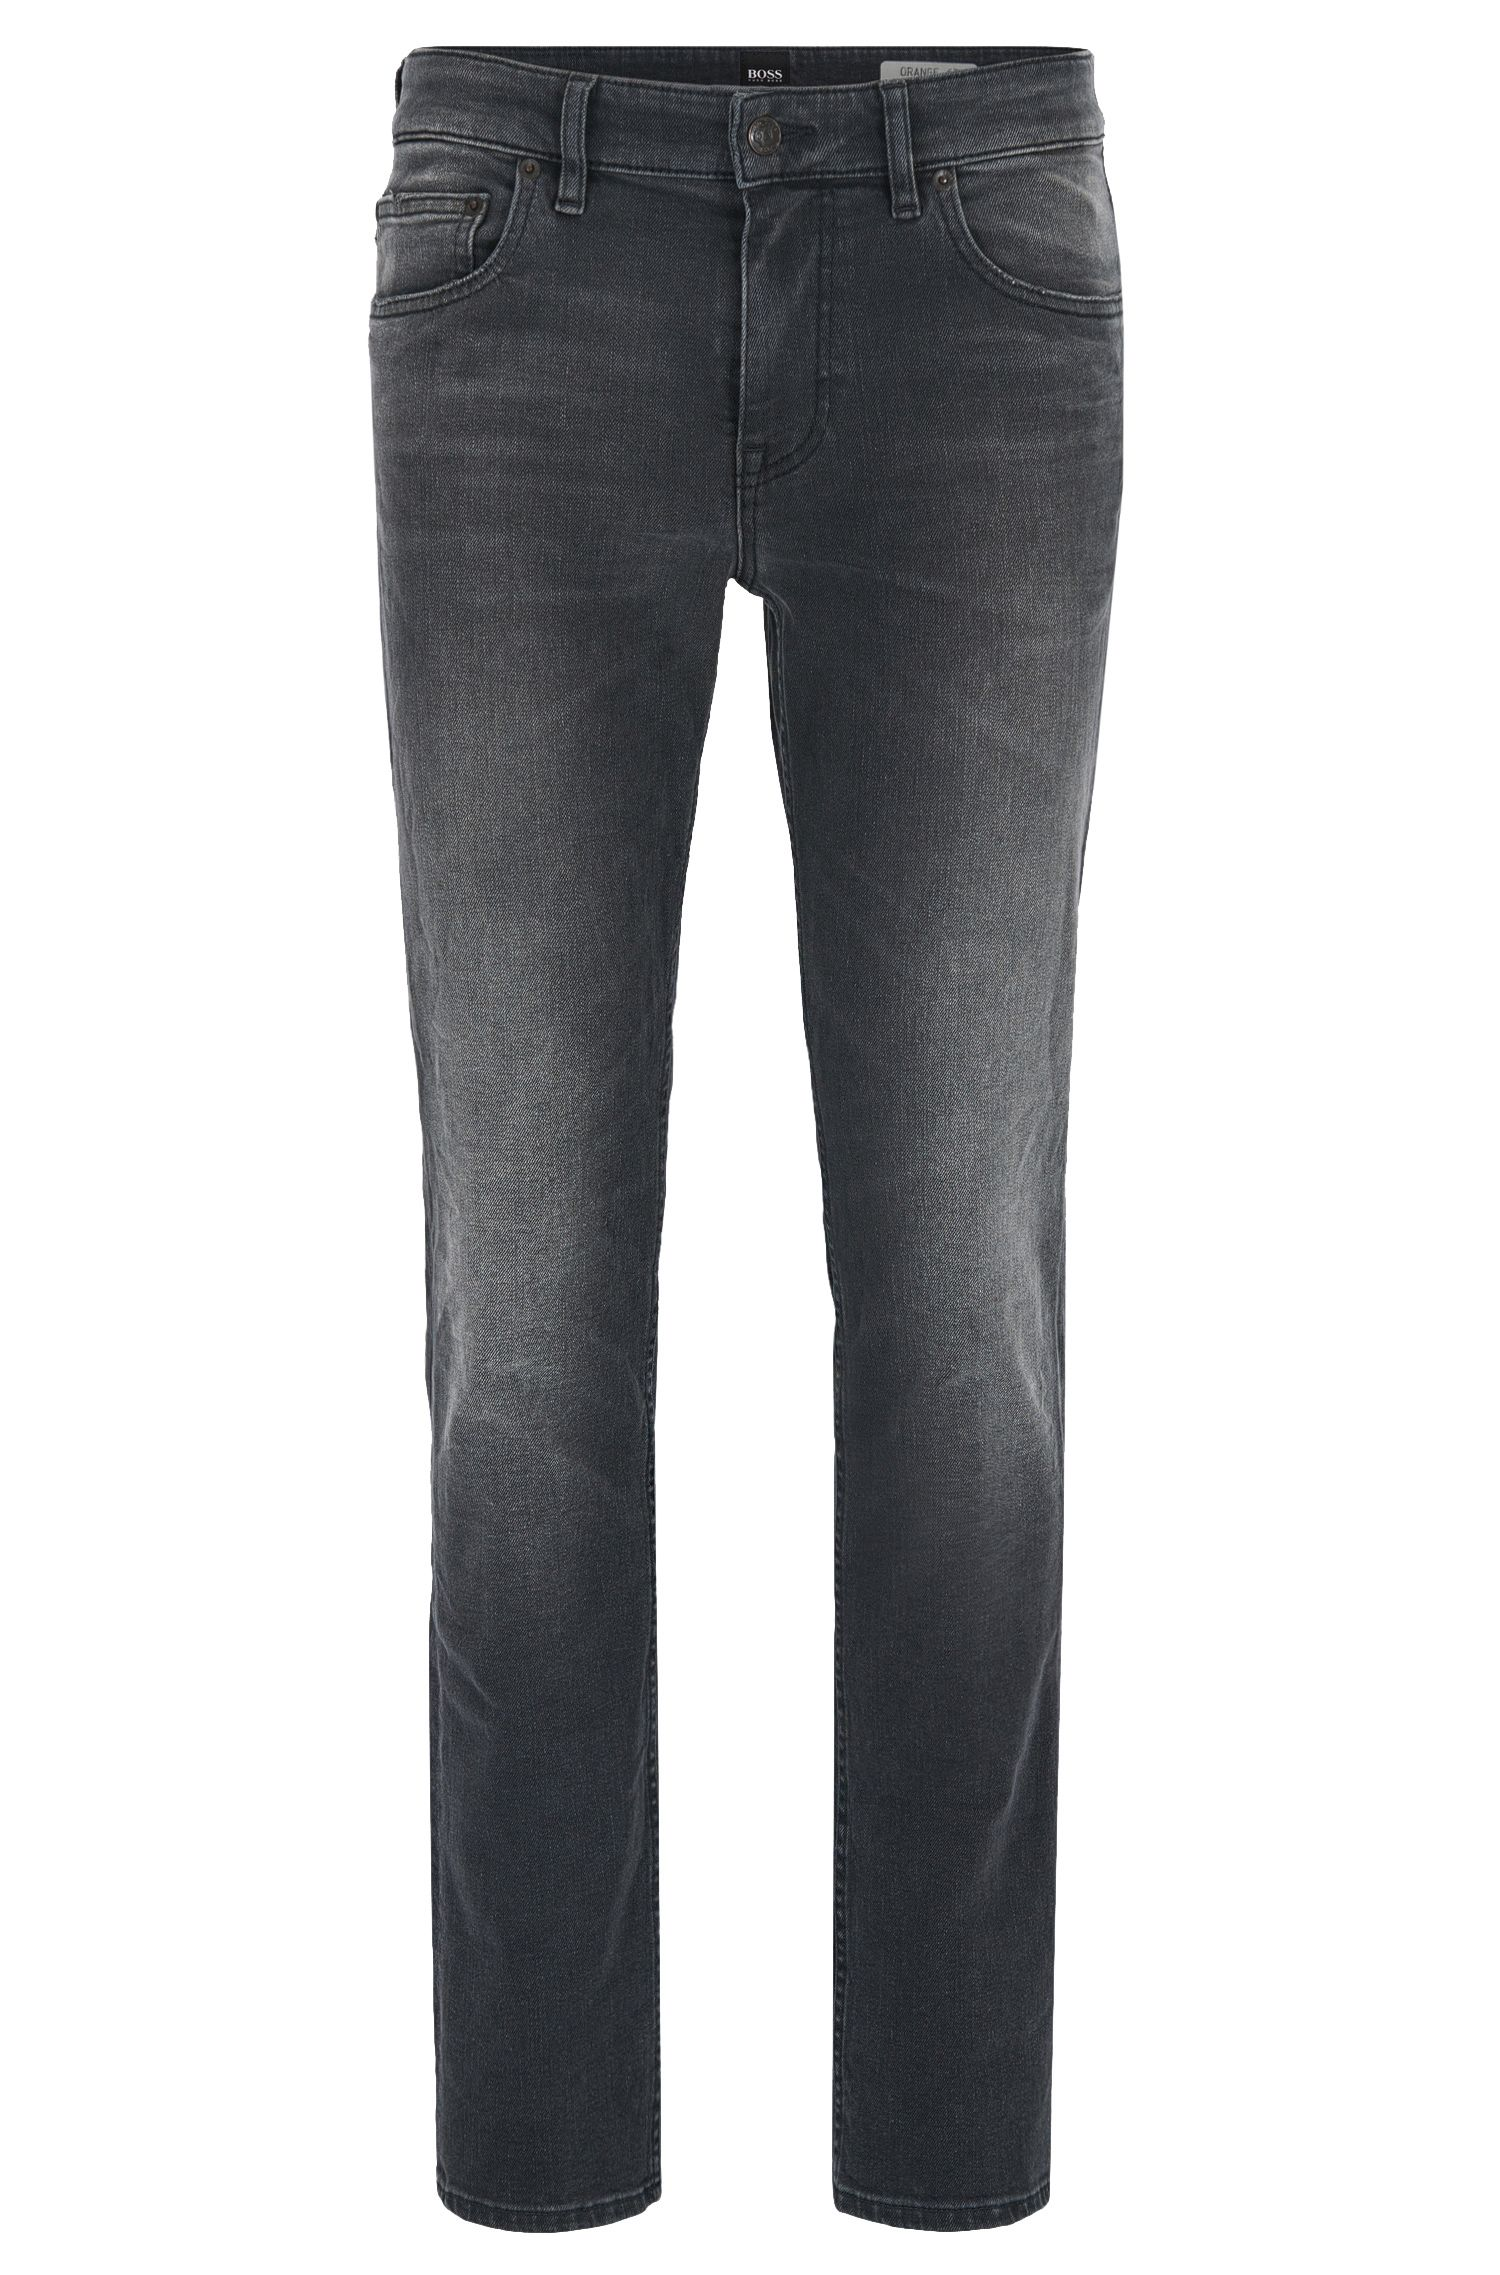 Slim-Fit Jeans aus komfortablem Stretch-Denim mit Waschung